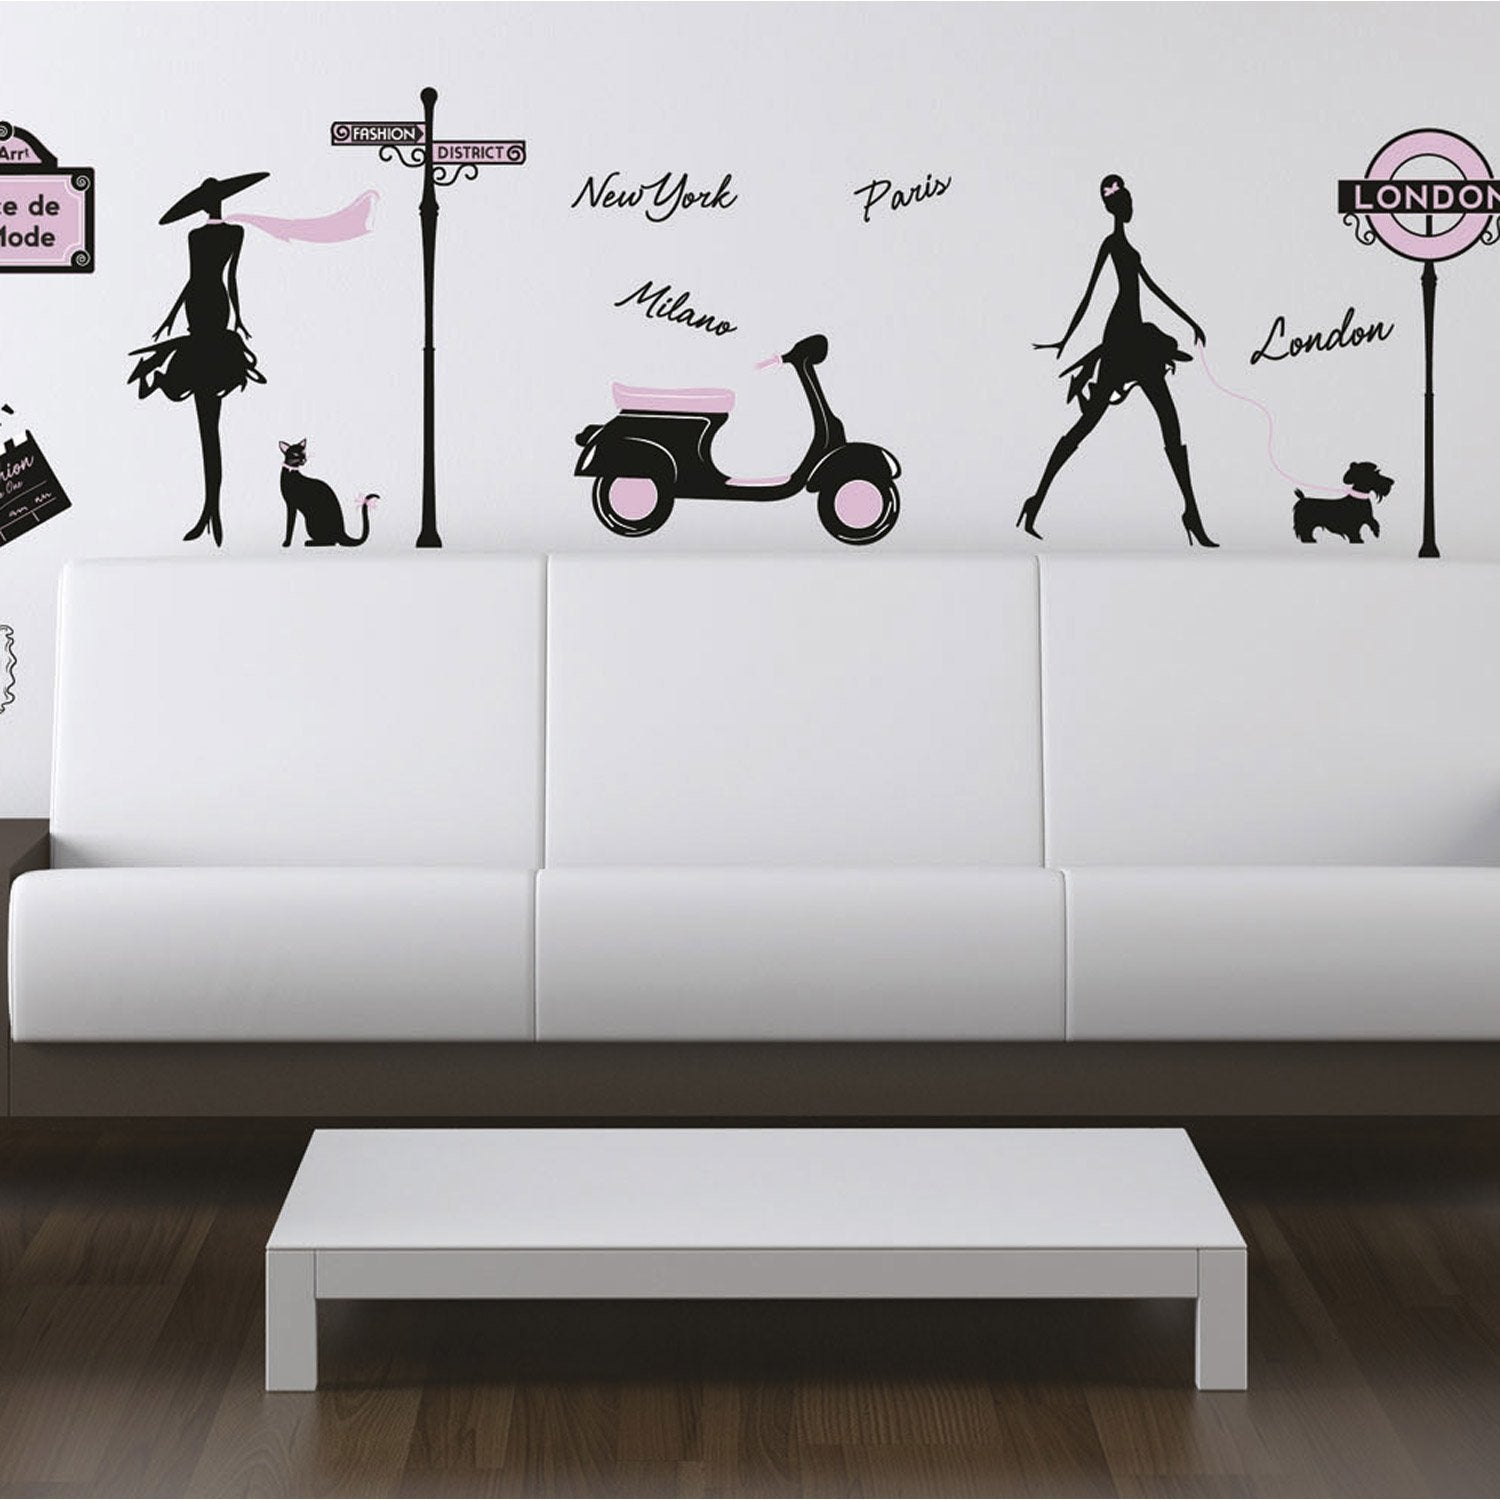 Sticker world fashion 50 cm x 70 cm leroy merlin - Stickers carrelage salle de bain leroy merlin ...